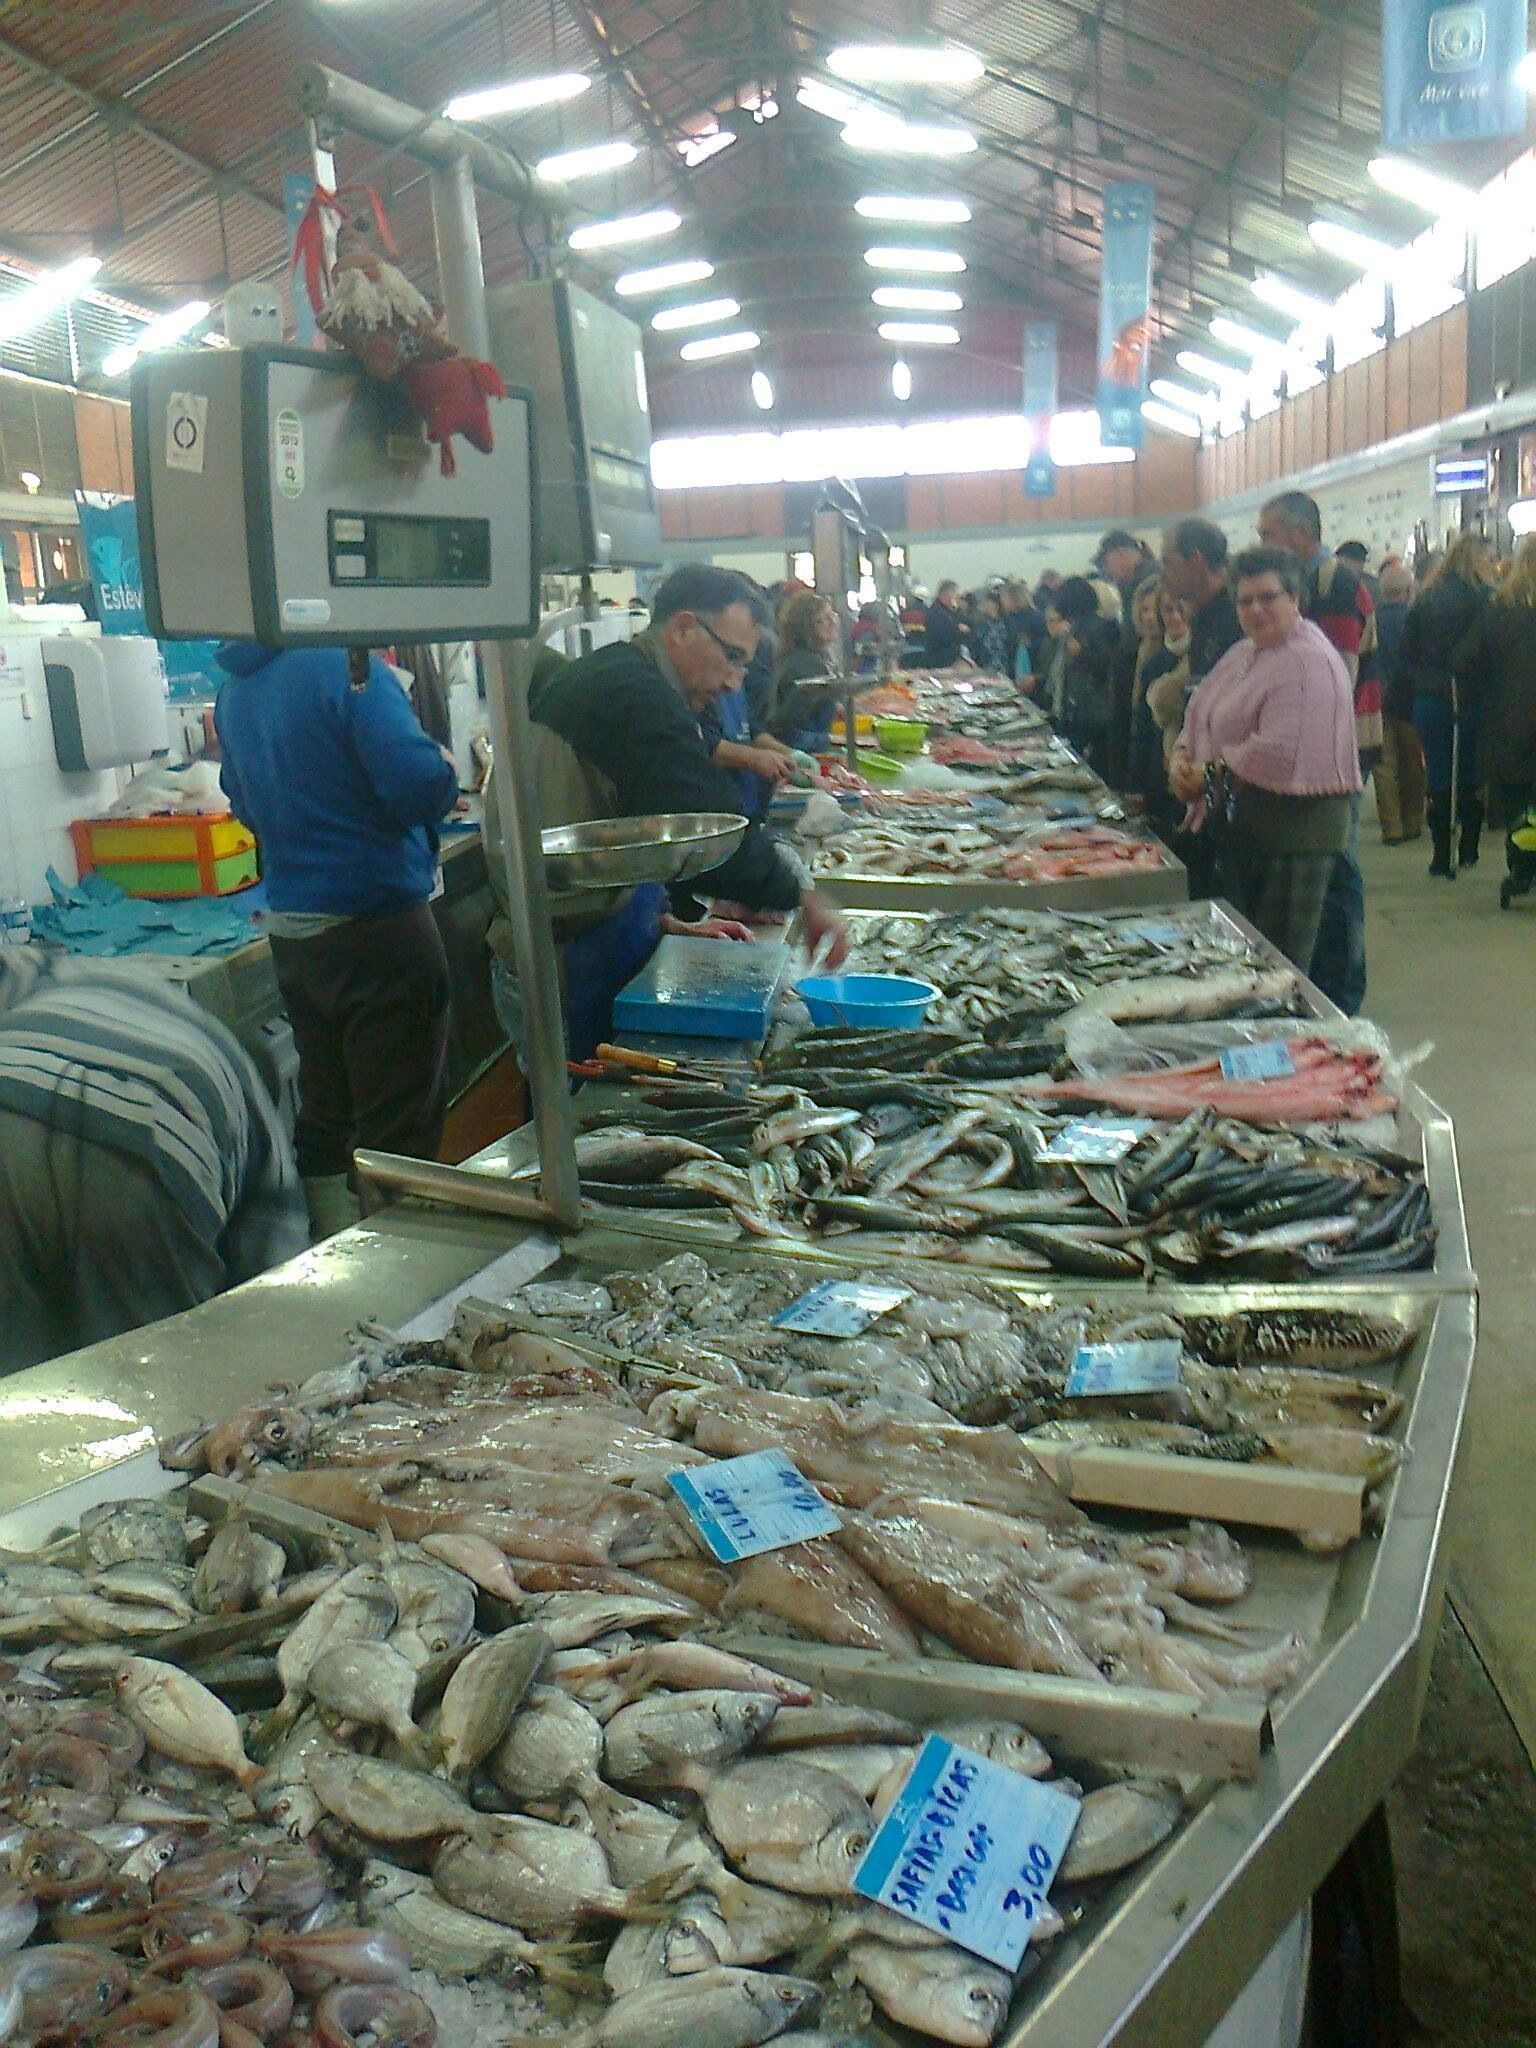 Pin By Miguel Carvalho On Algarve Paisagens E Tradicoes Landscapes And Traditions The Fish Market Algarve Portugal Visit Portugal